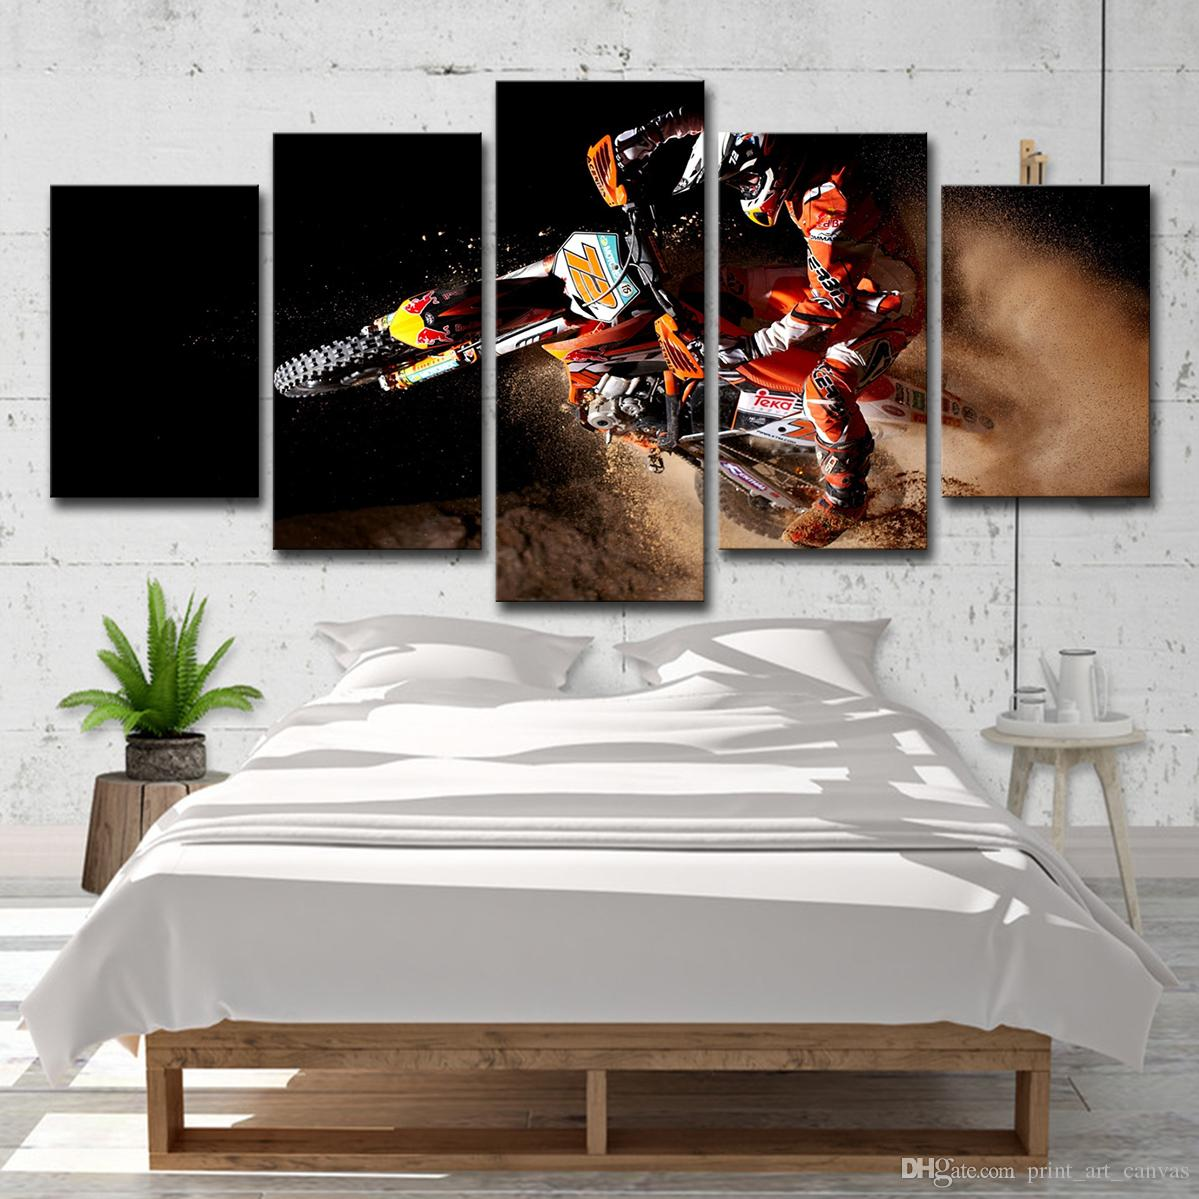 Canvas poster wall art home decor 5 pieces motorcycle paintings for living room hd prints x game sports motor pictures